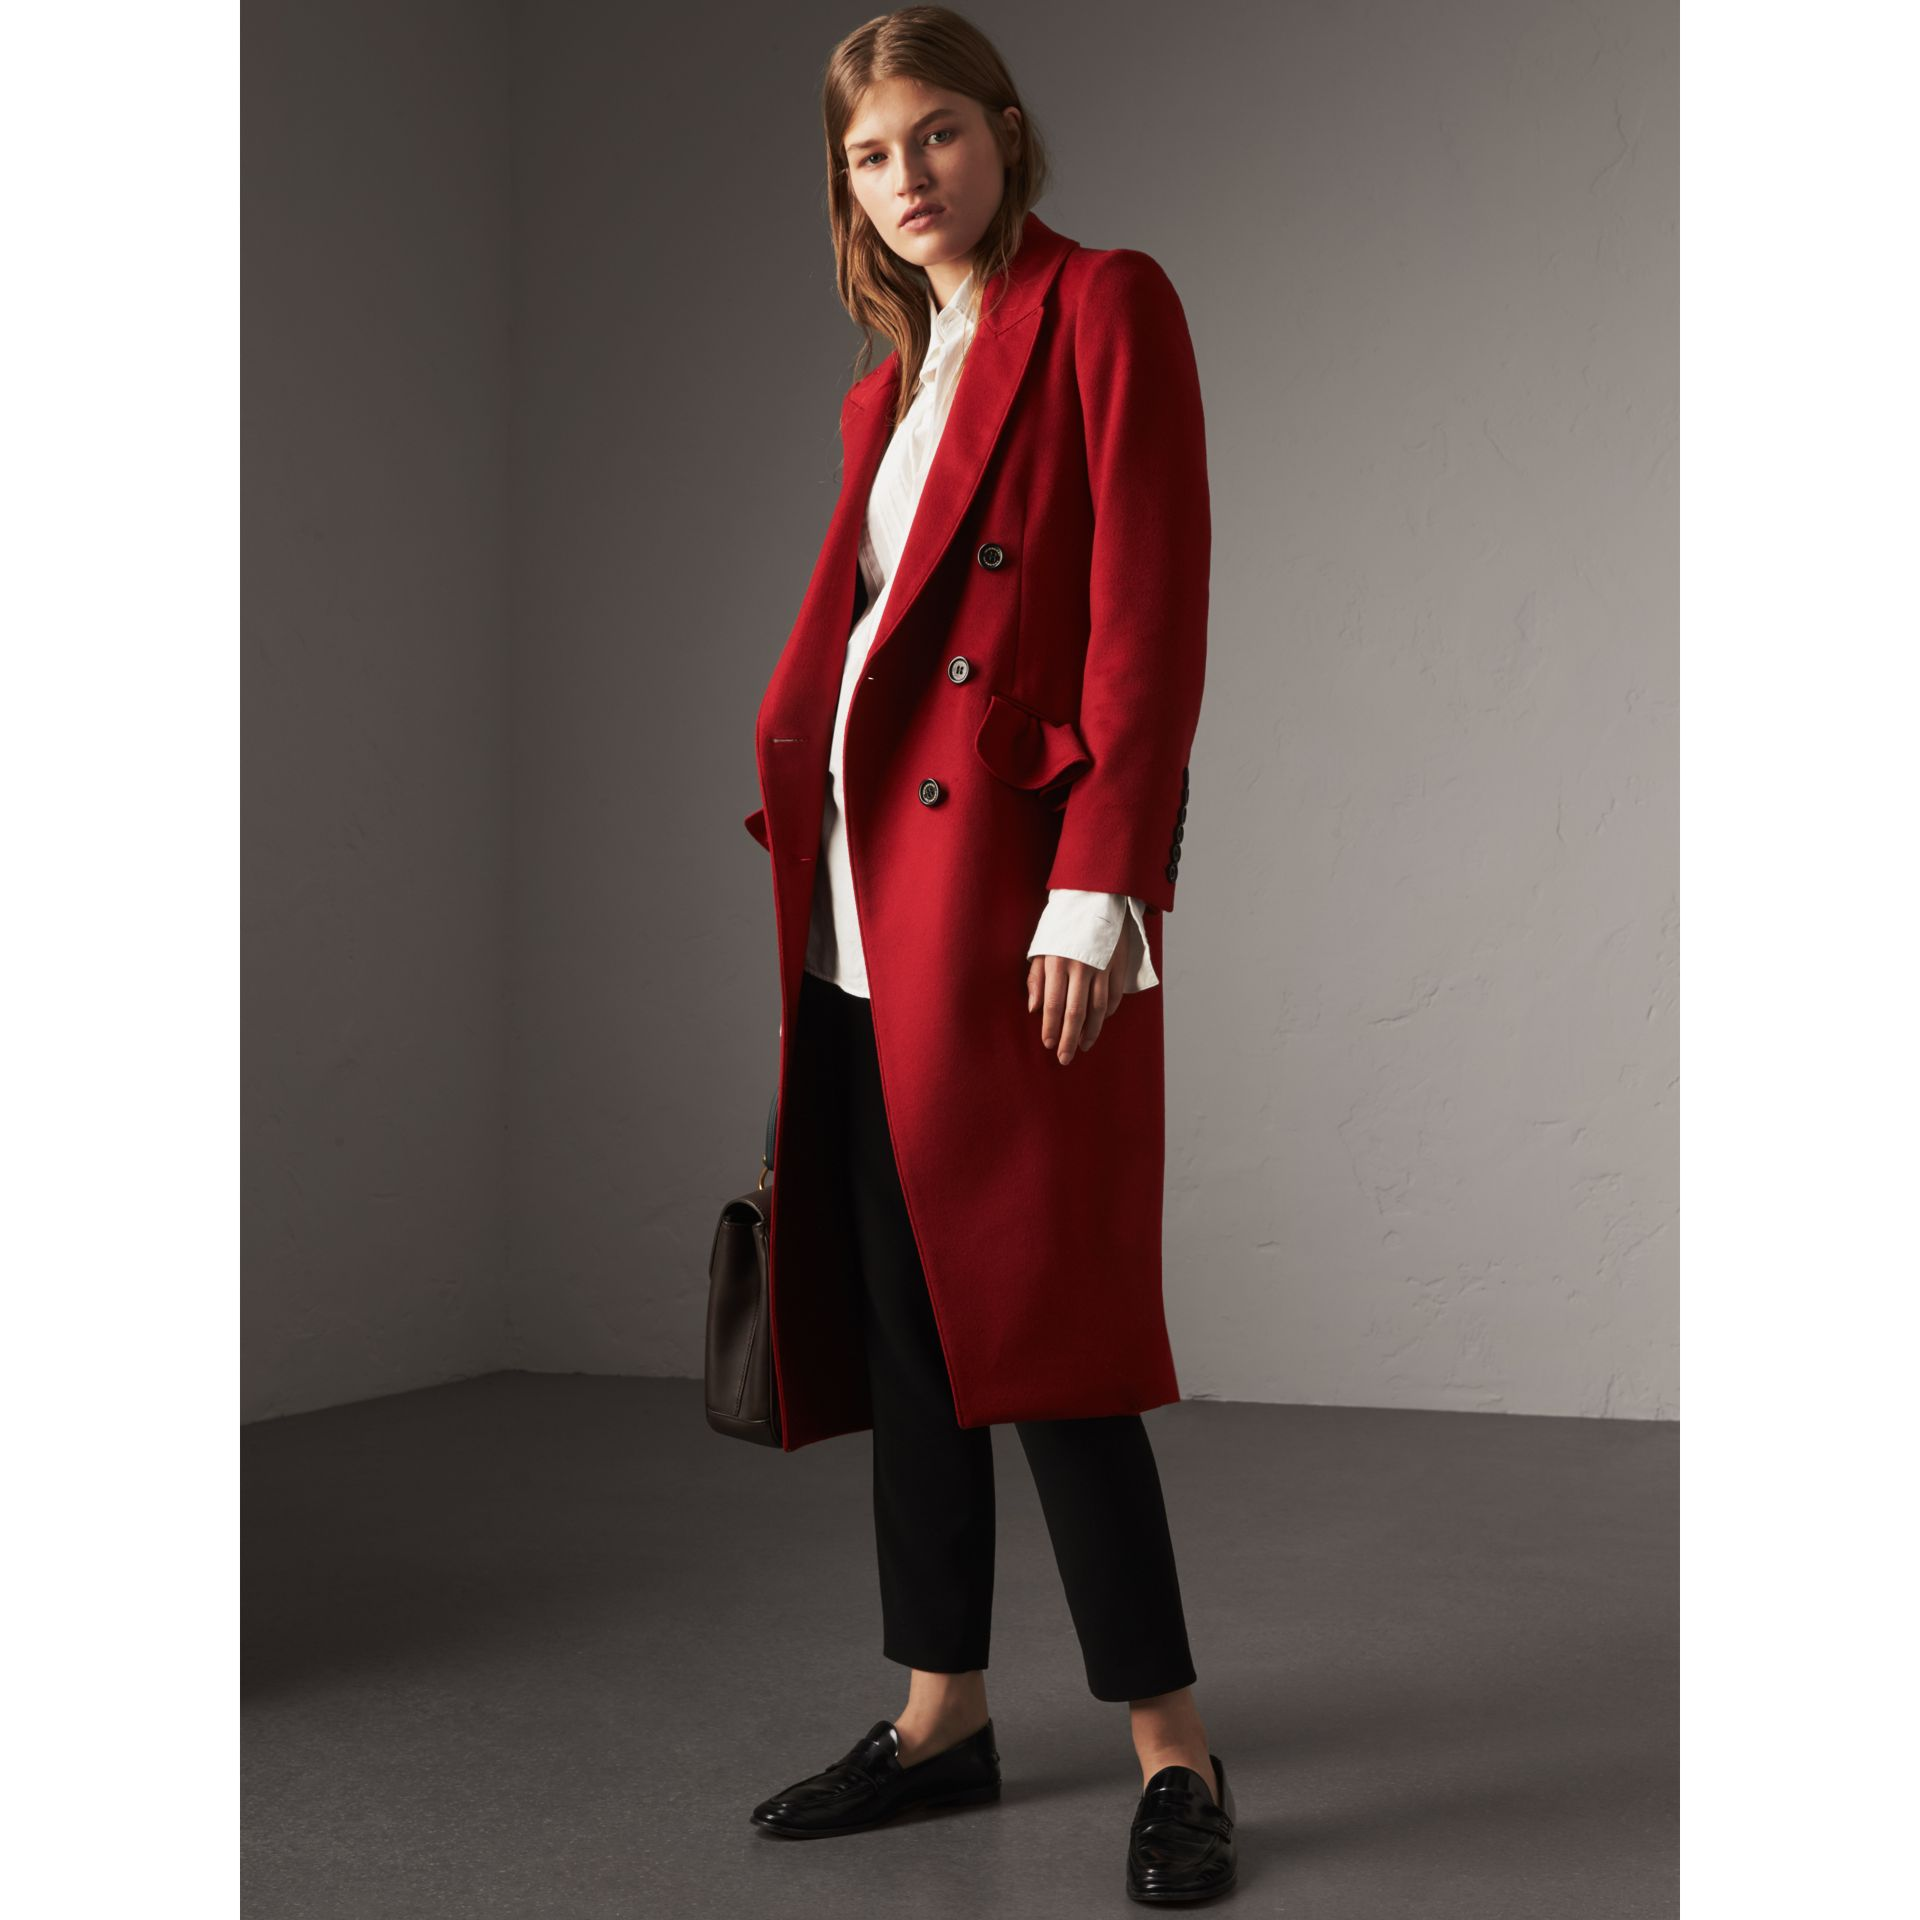 Ruffle Detail Wool Cashmere Tailored Coat in Military Red - Women | Burberry Australia - gallery image 6